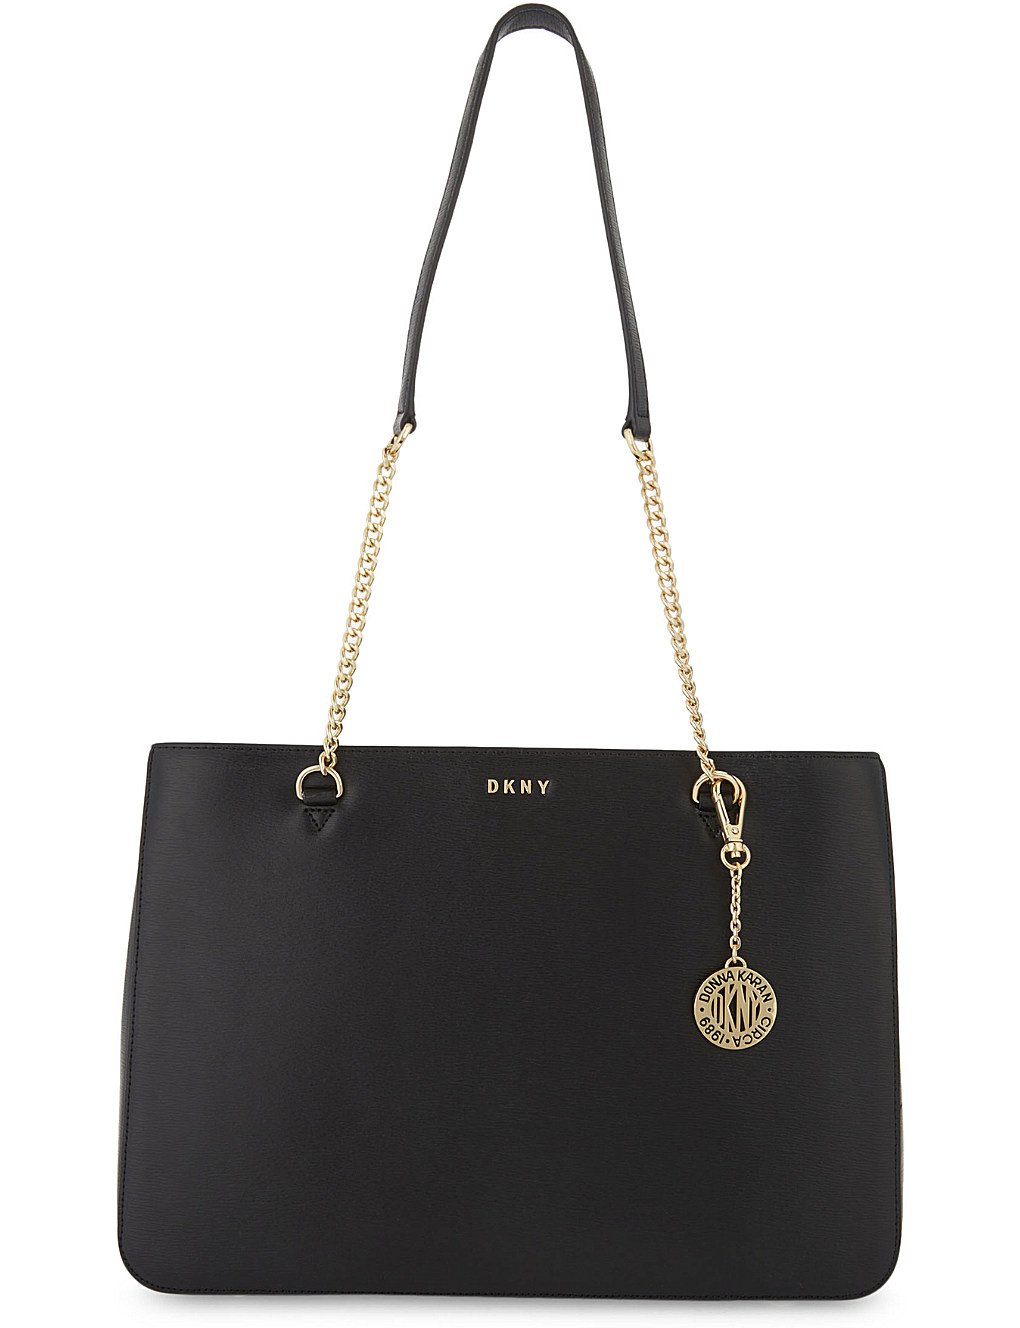 Getting in vogue with DKNY bags